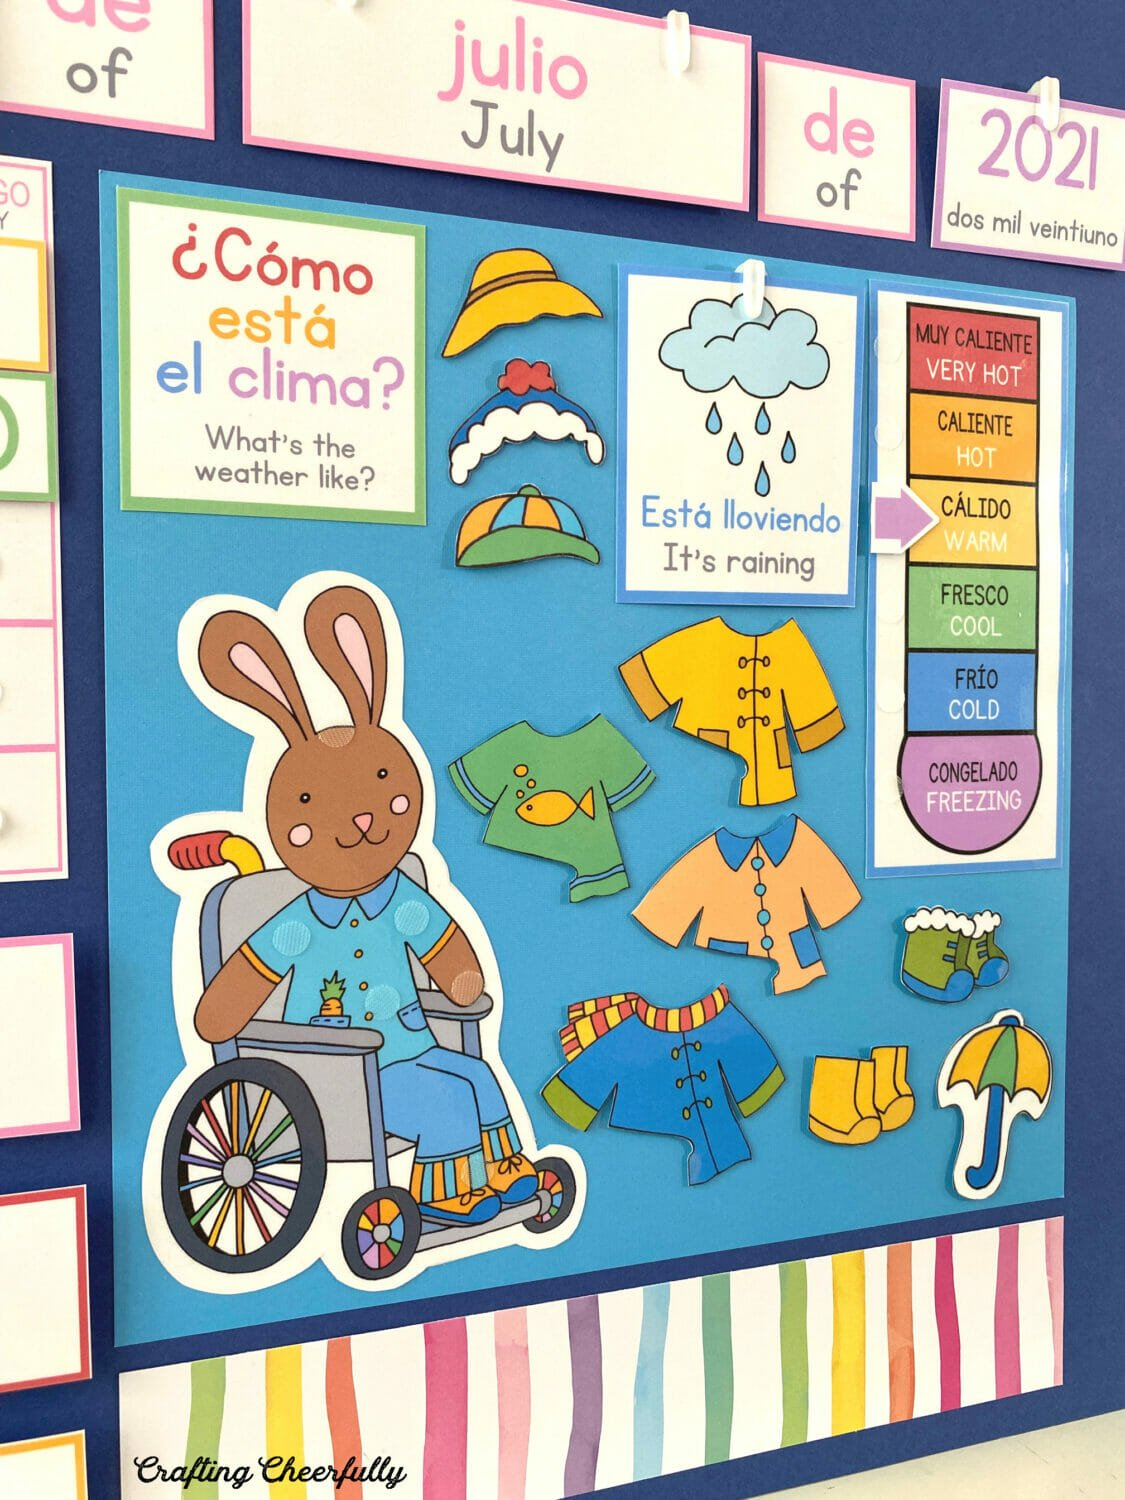 Morning Board in Spanish and English showing weather bunnies.